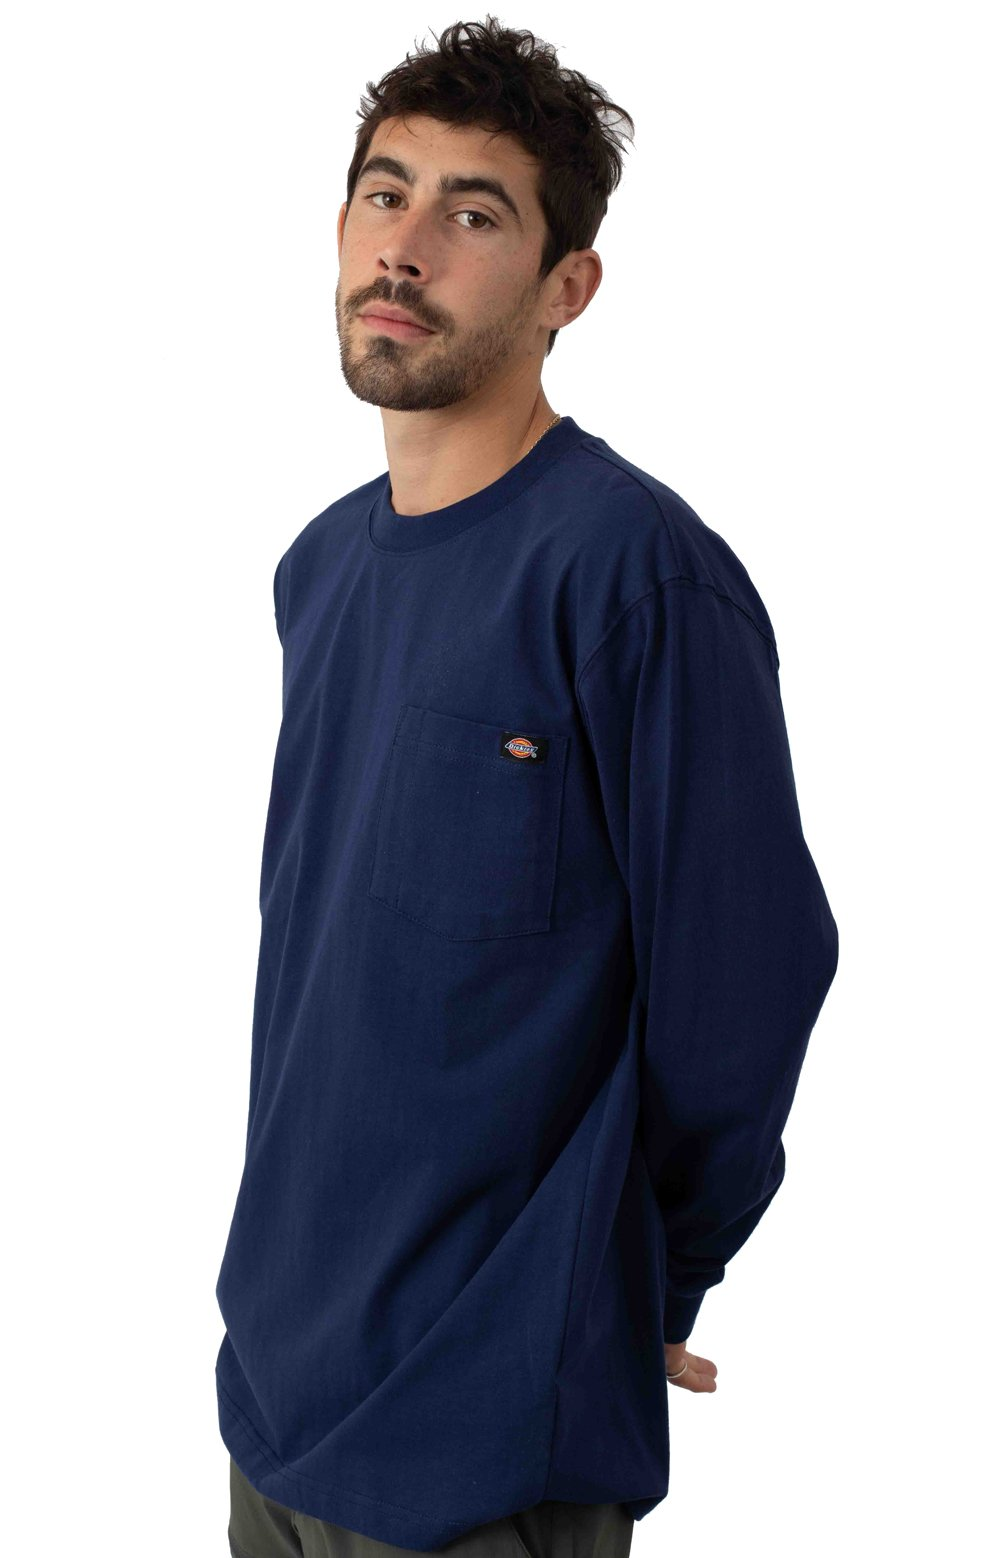 (WL450EL) Long Sleeve Heavyweight Crew Neck Shirt - Deep Blue 2